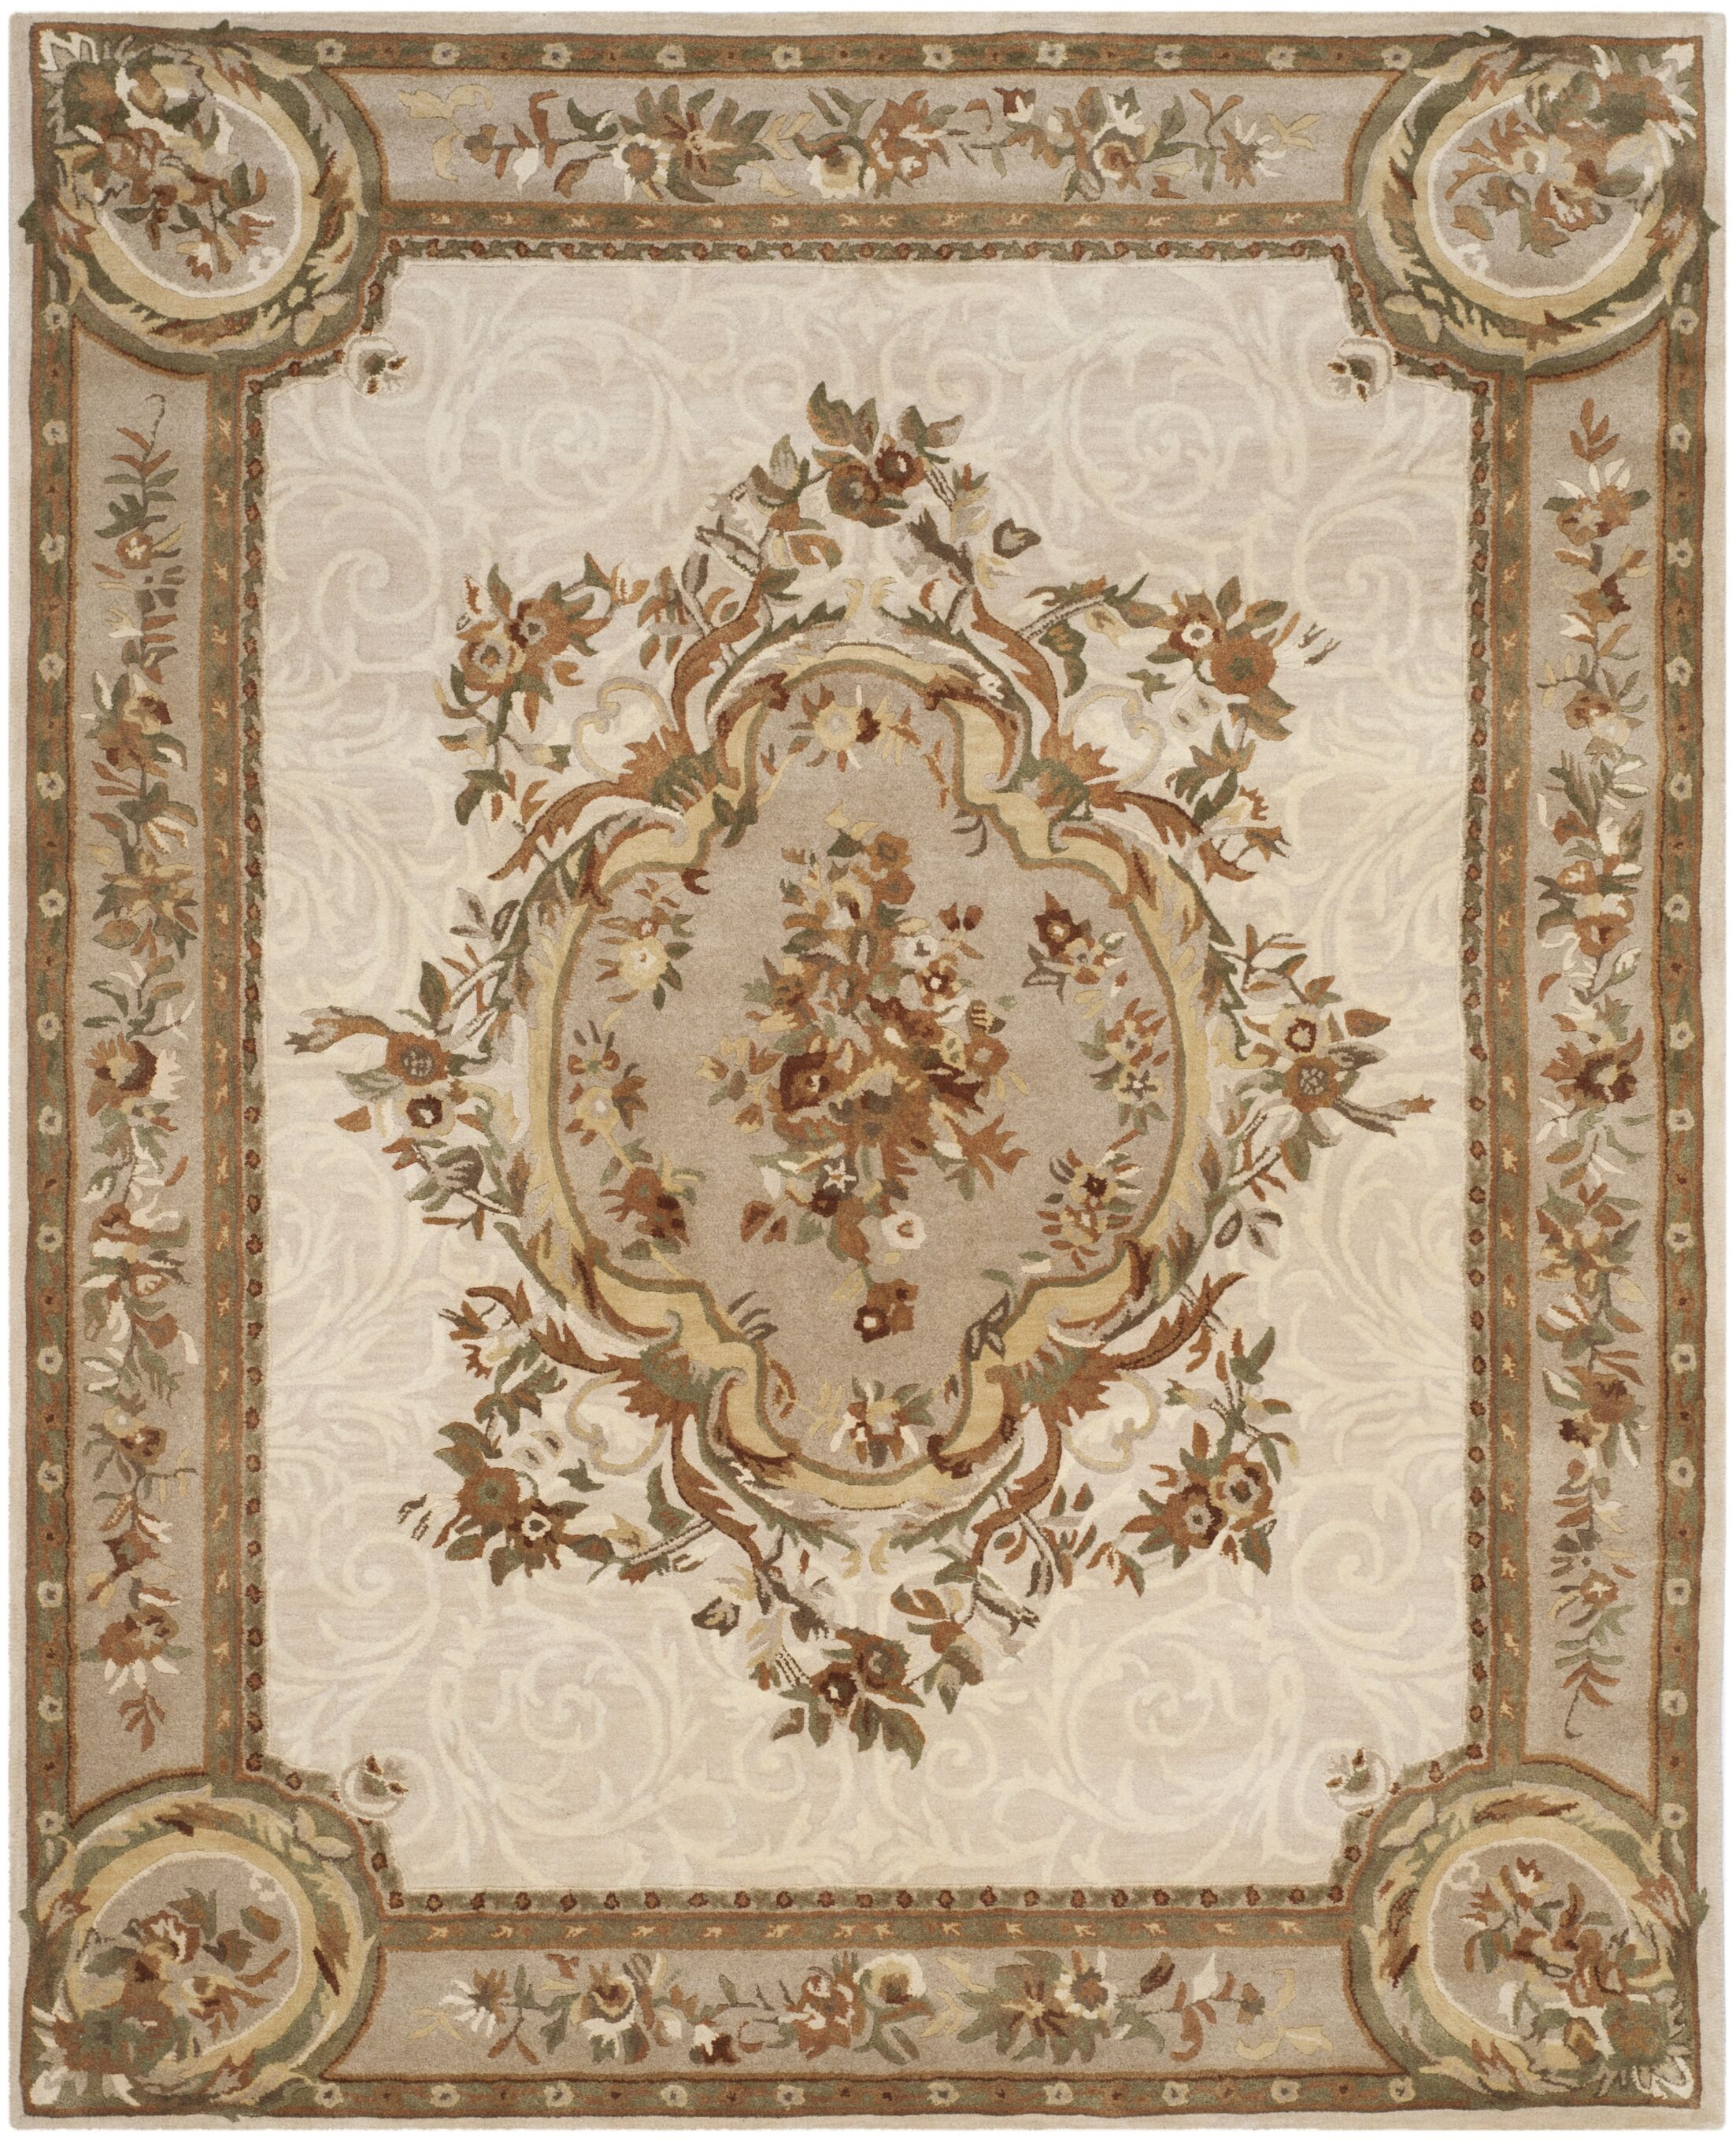 Atlasburg Hand-Tufted Wool Ivory Area Rug Size: Runner 2'6